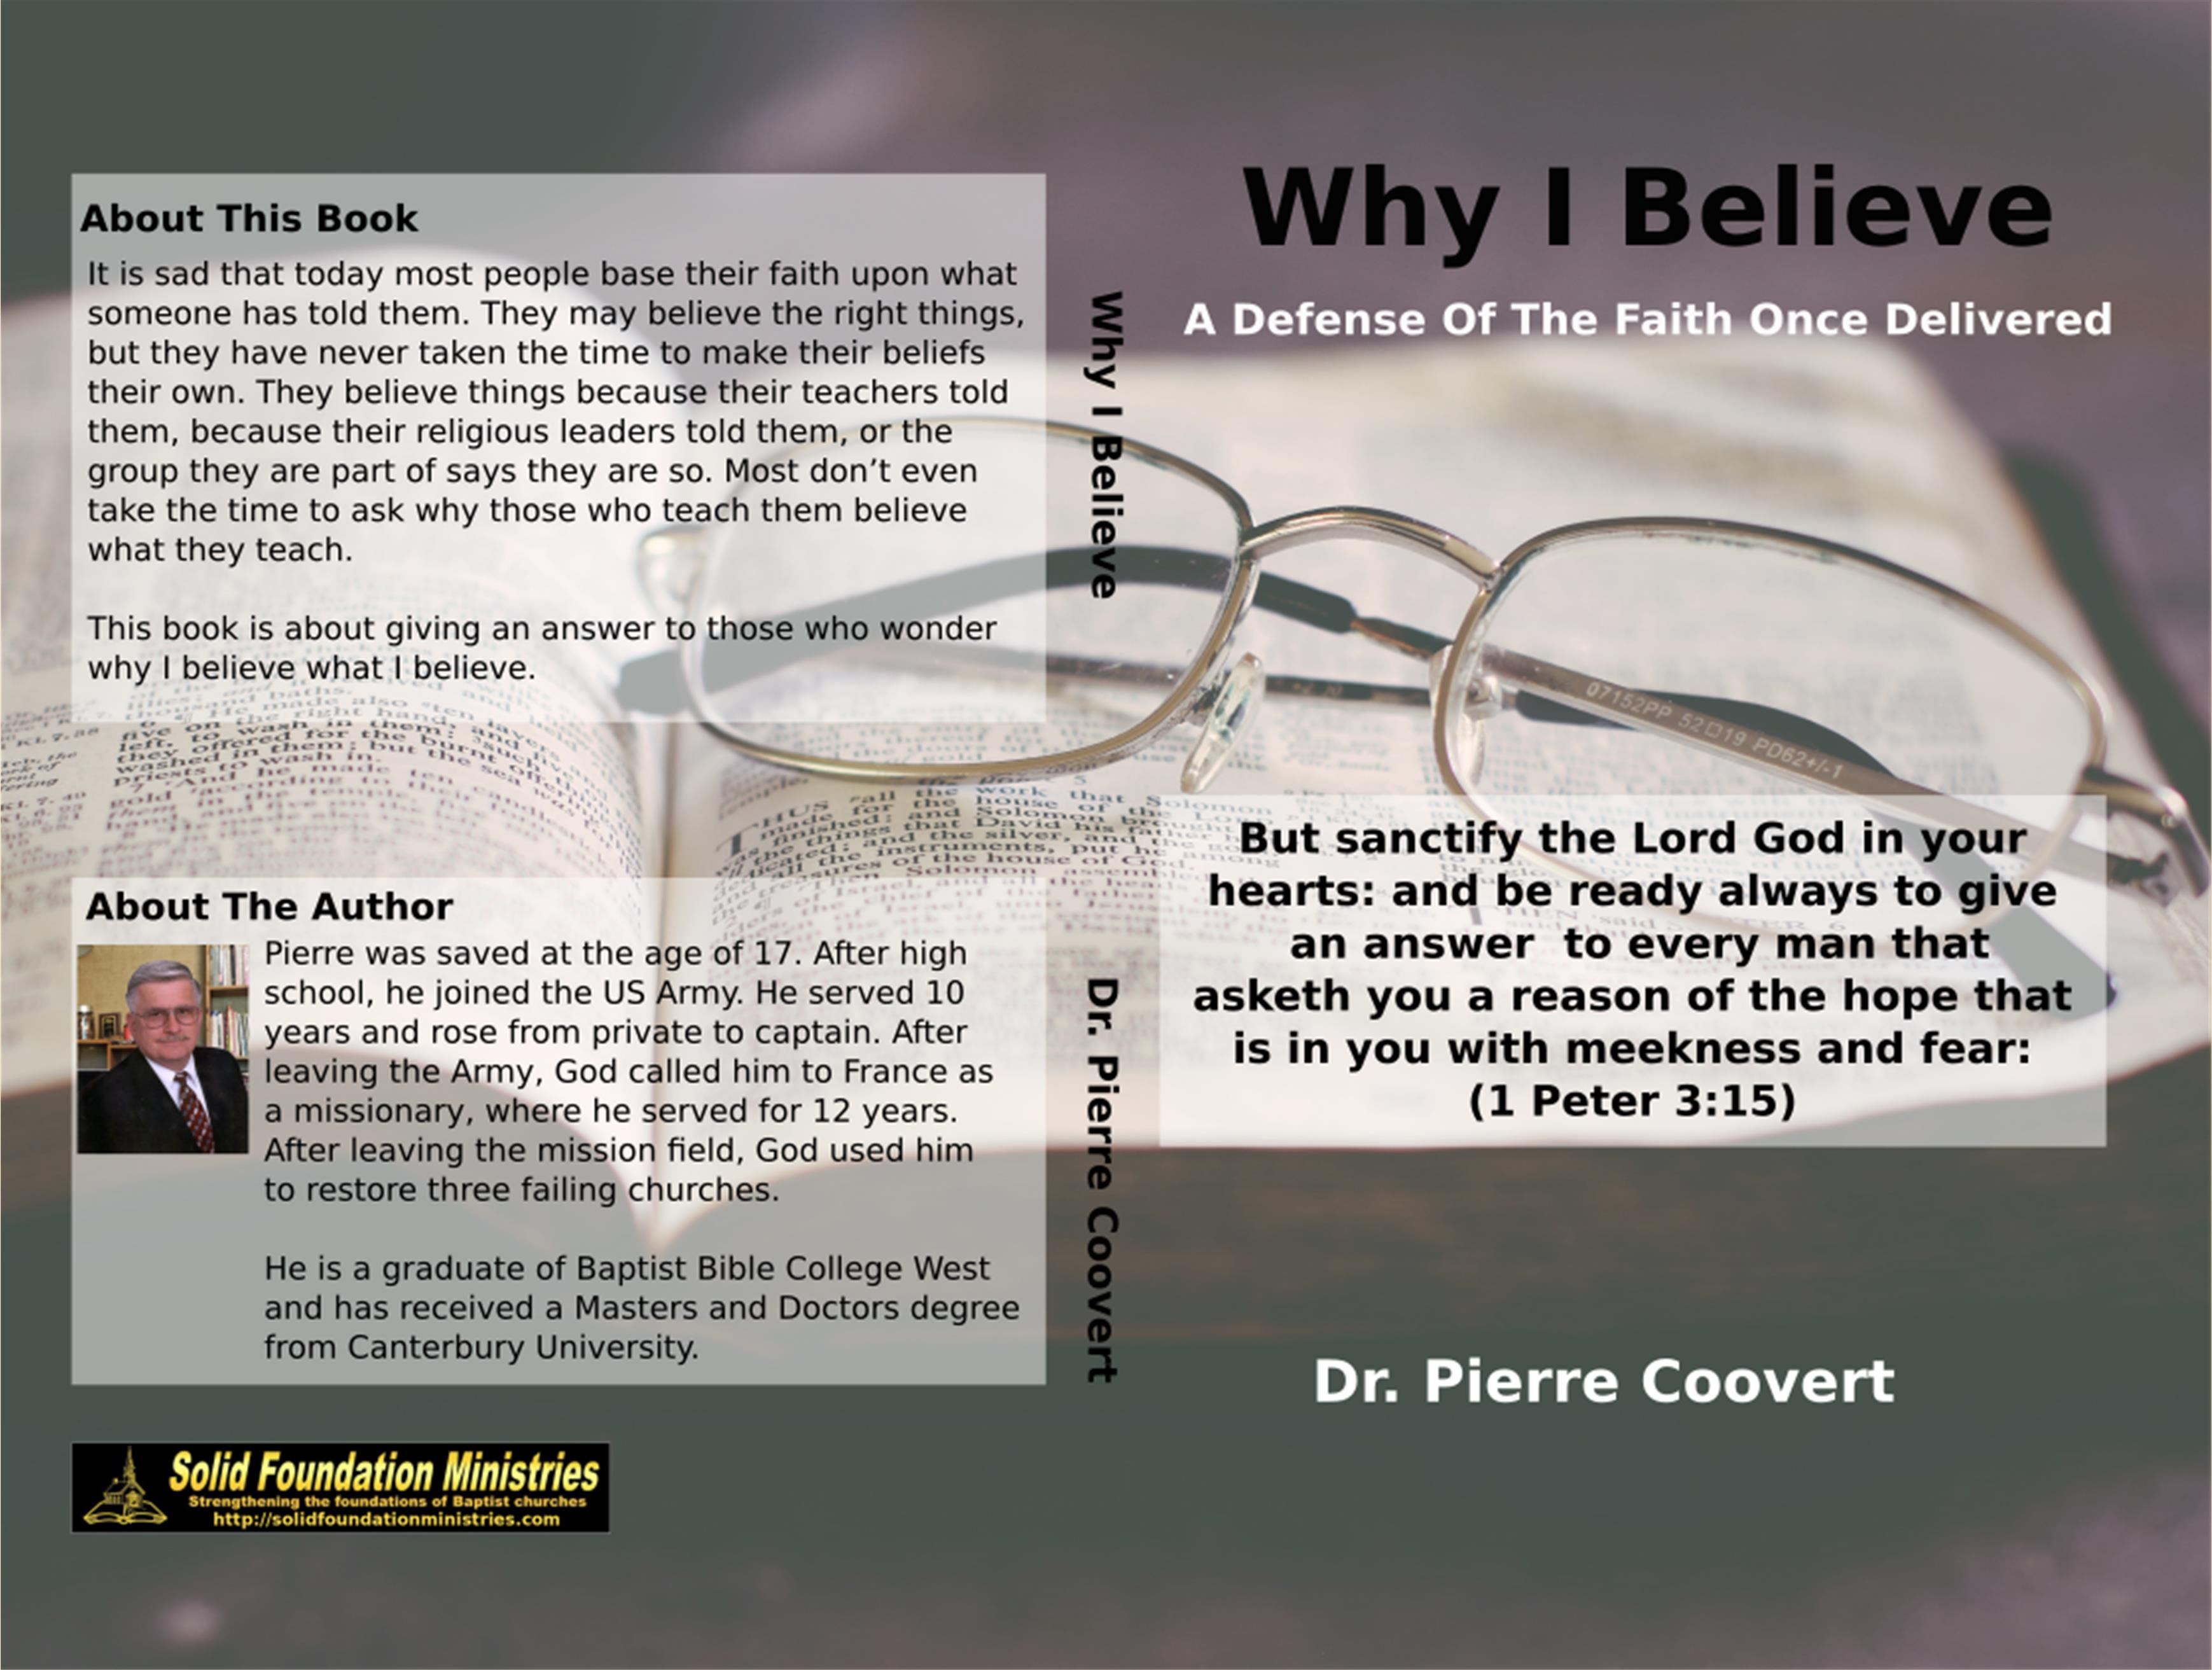 Why I Believe cover image